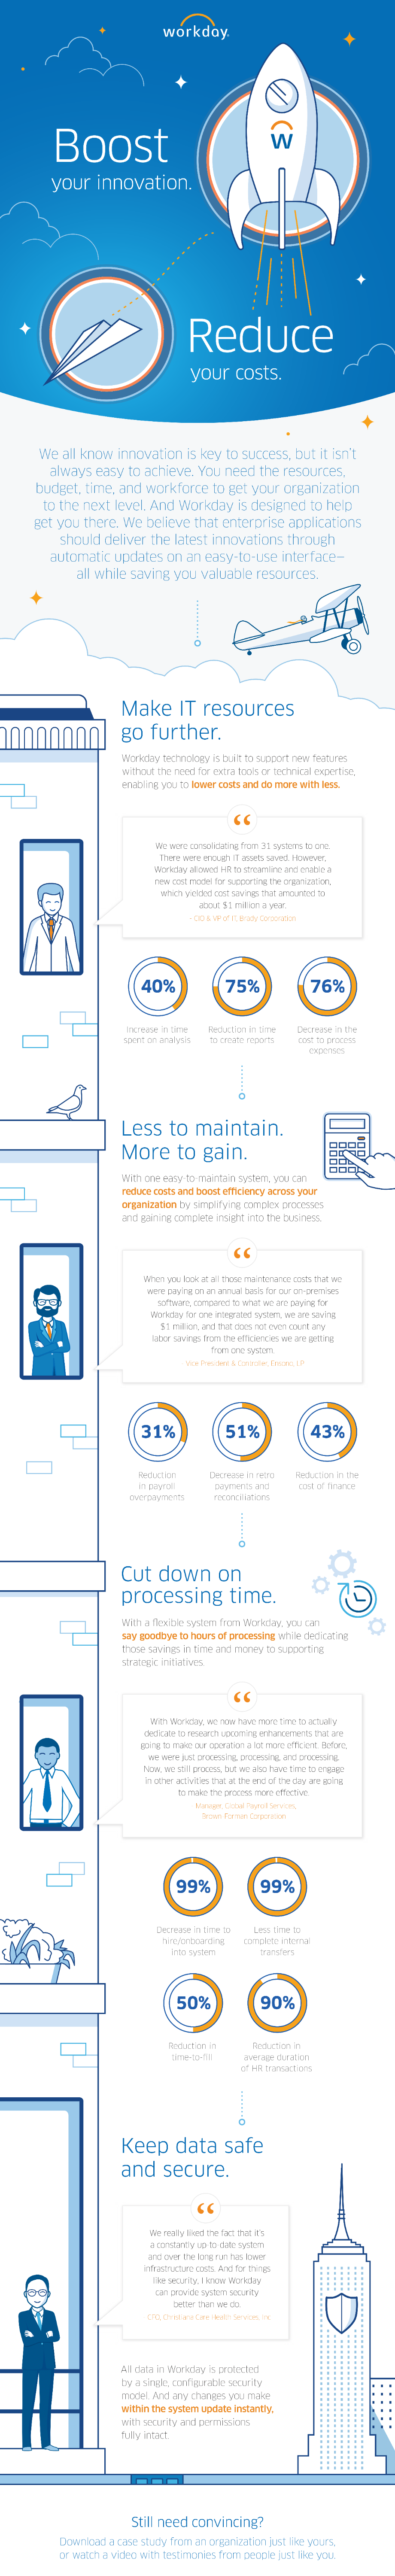 Boost Your Innovation  Reduce Your Costs  | Workday Infographic